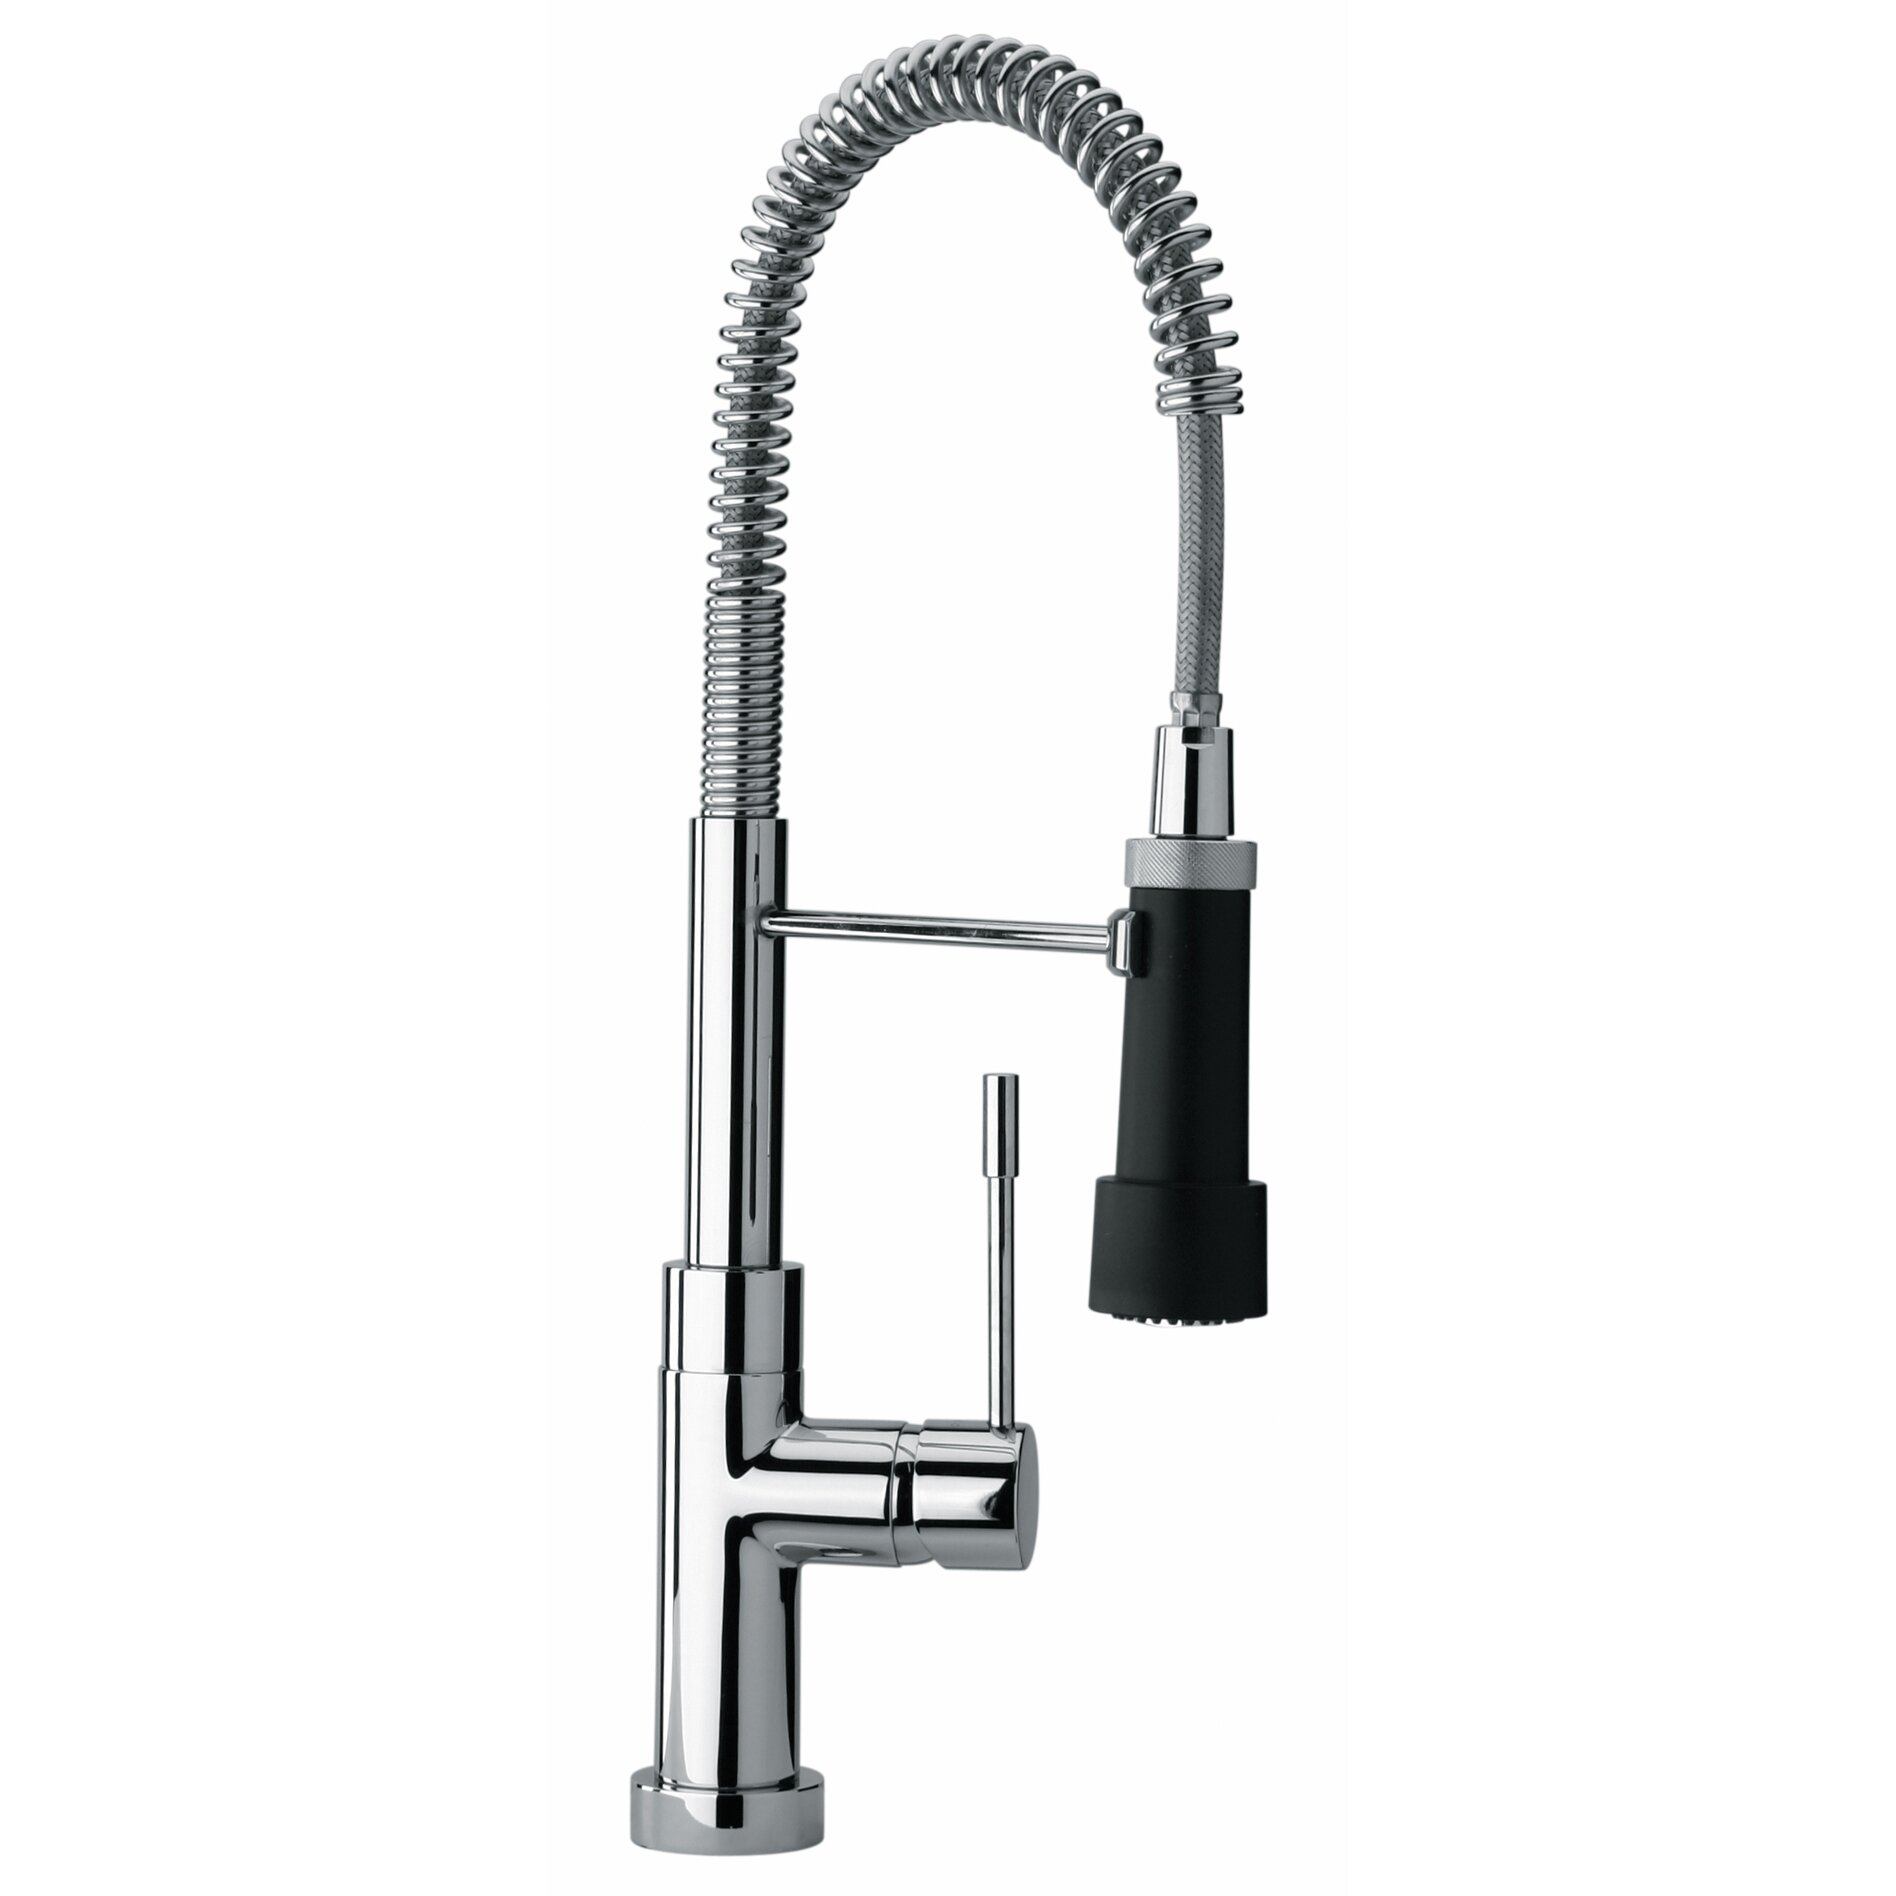 Jewel Faucets J25 Kitchen Series Single Hole Kitchen Faucet with Spring Spout and Magnetic Commercial Sprayer